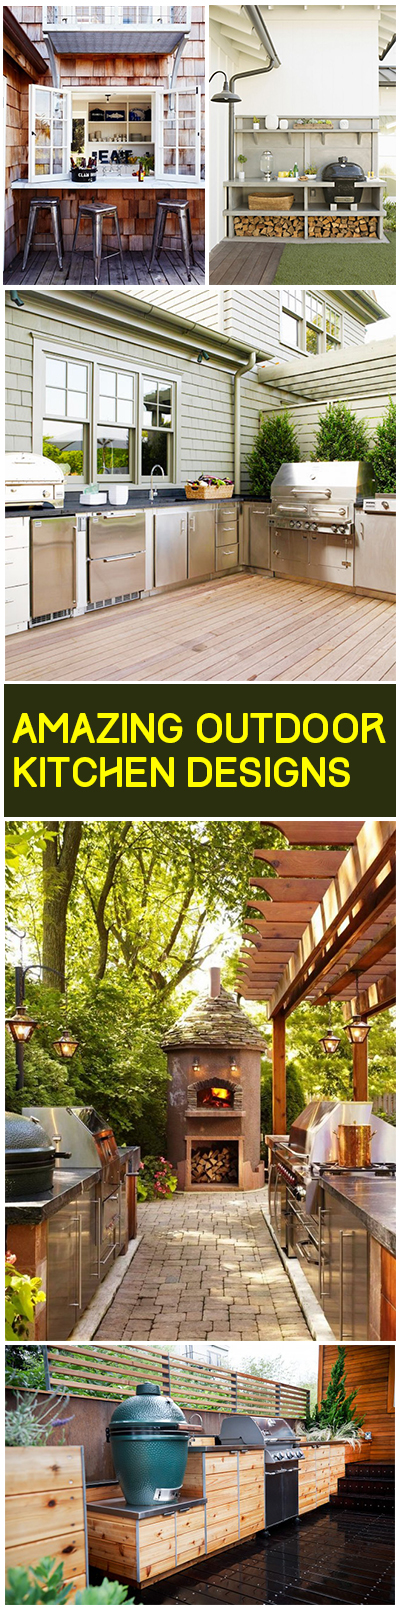 Amazing Outdoor Kitchen Designs